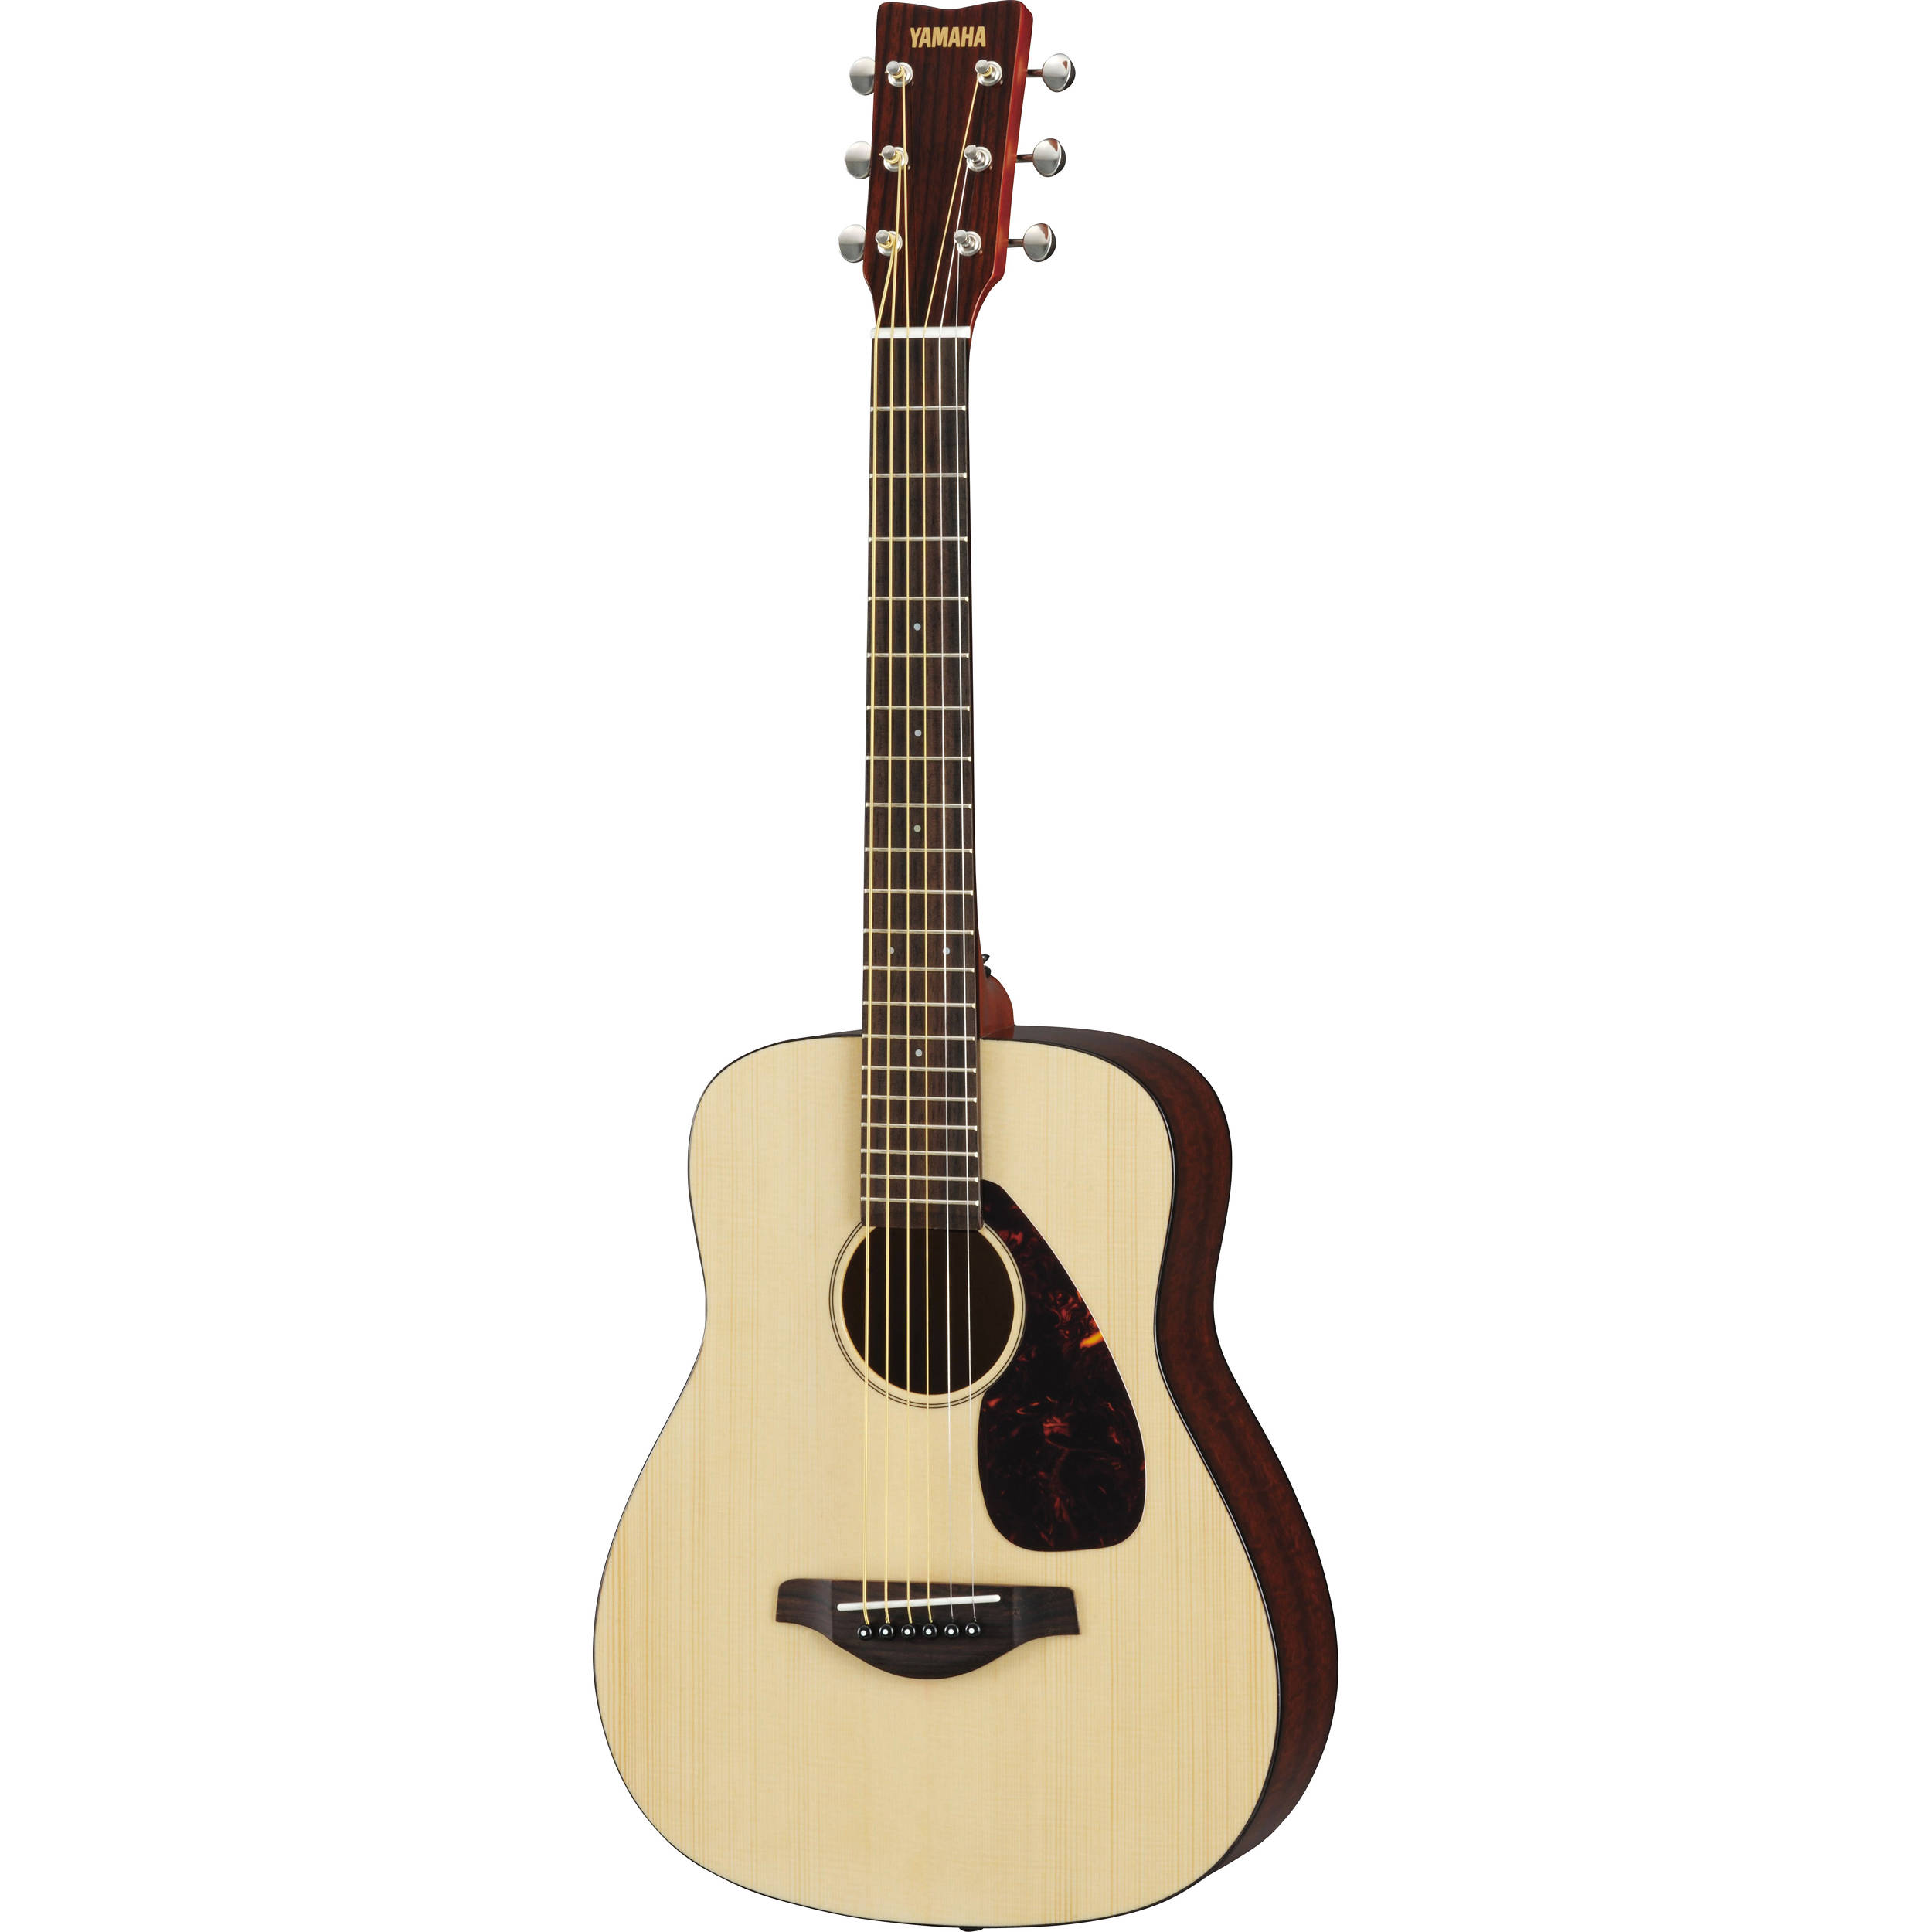 Yamaha jr2s solid top 3 4 size acoustic guitar natural jr2s for 3 4 yamaha acoustic guitar